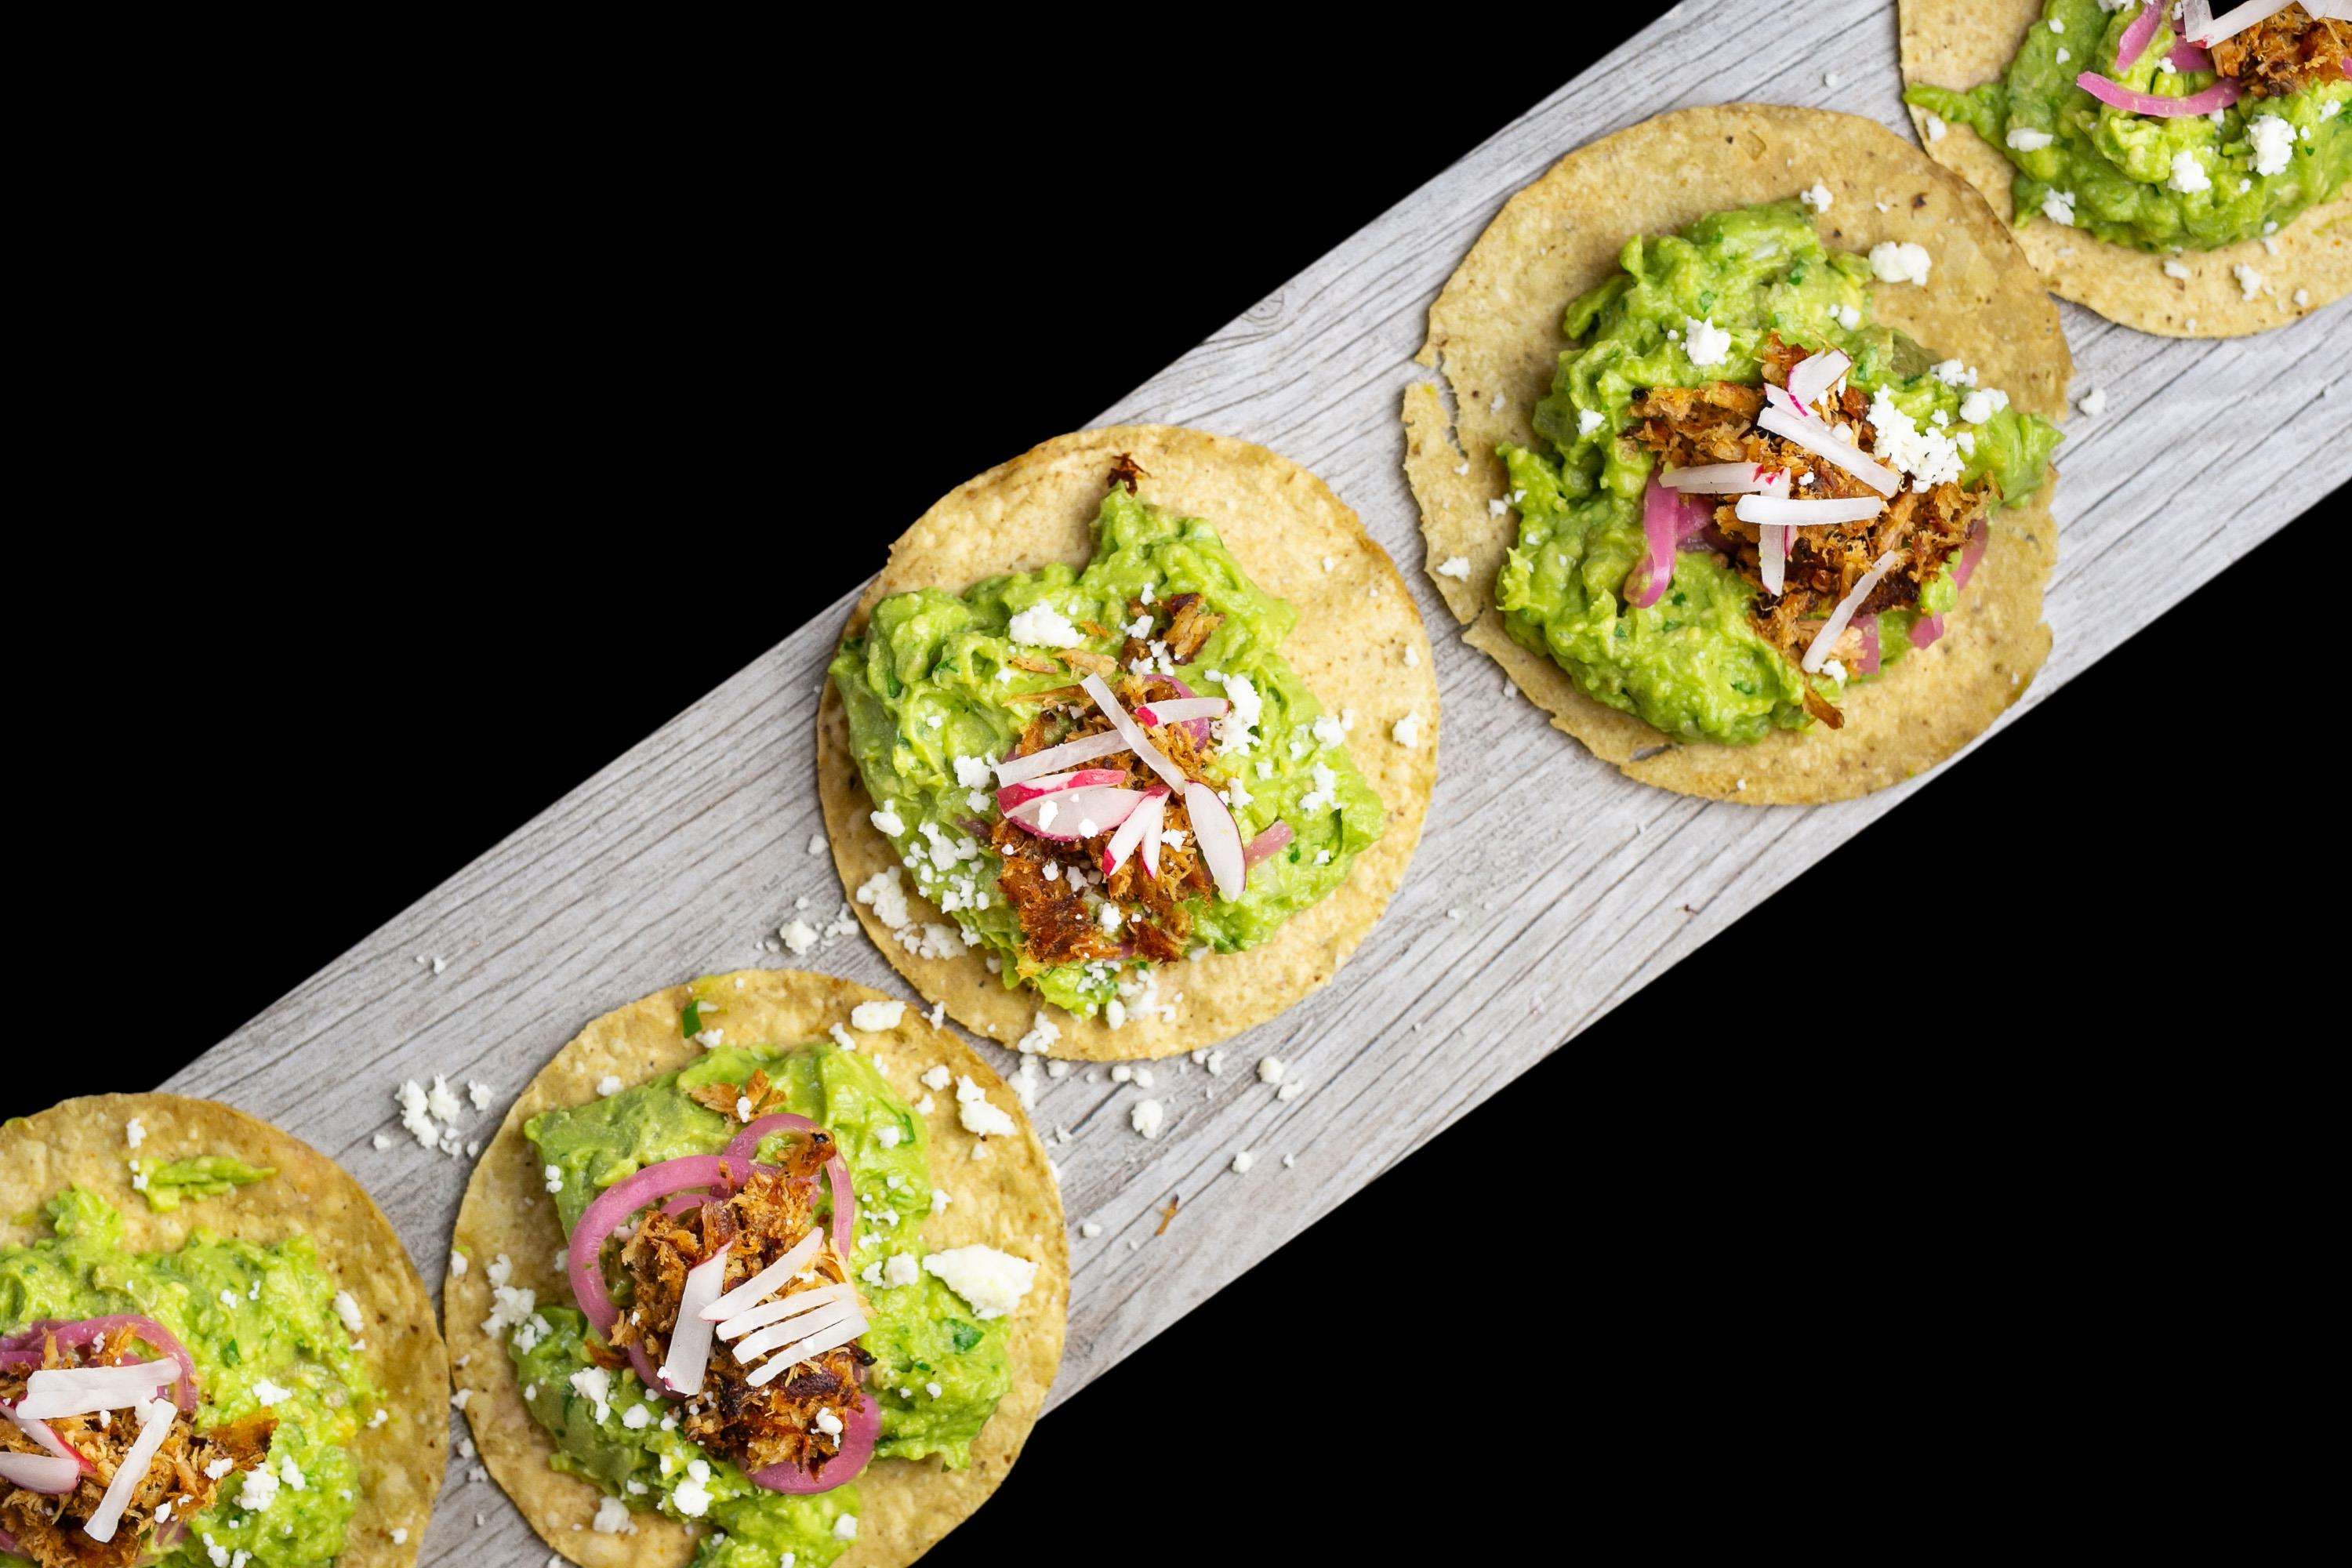 several tortillas with guacamole and various toppings